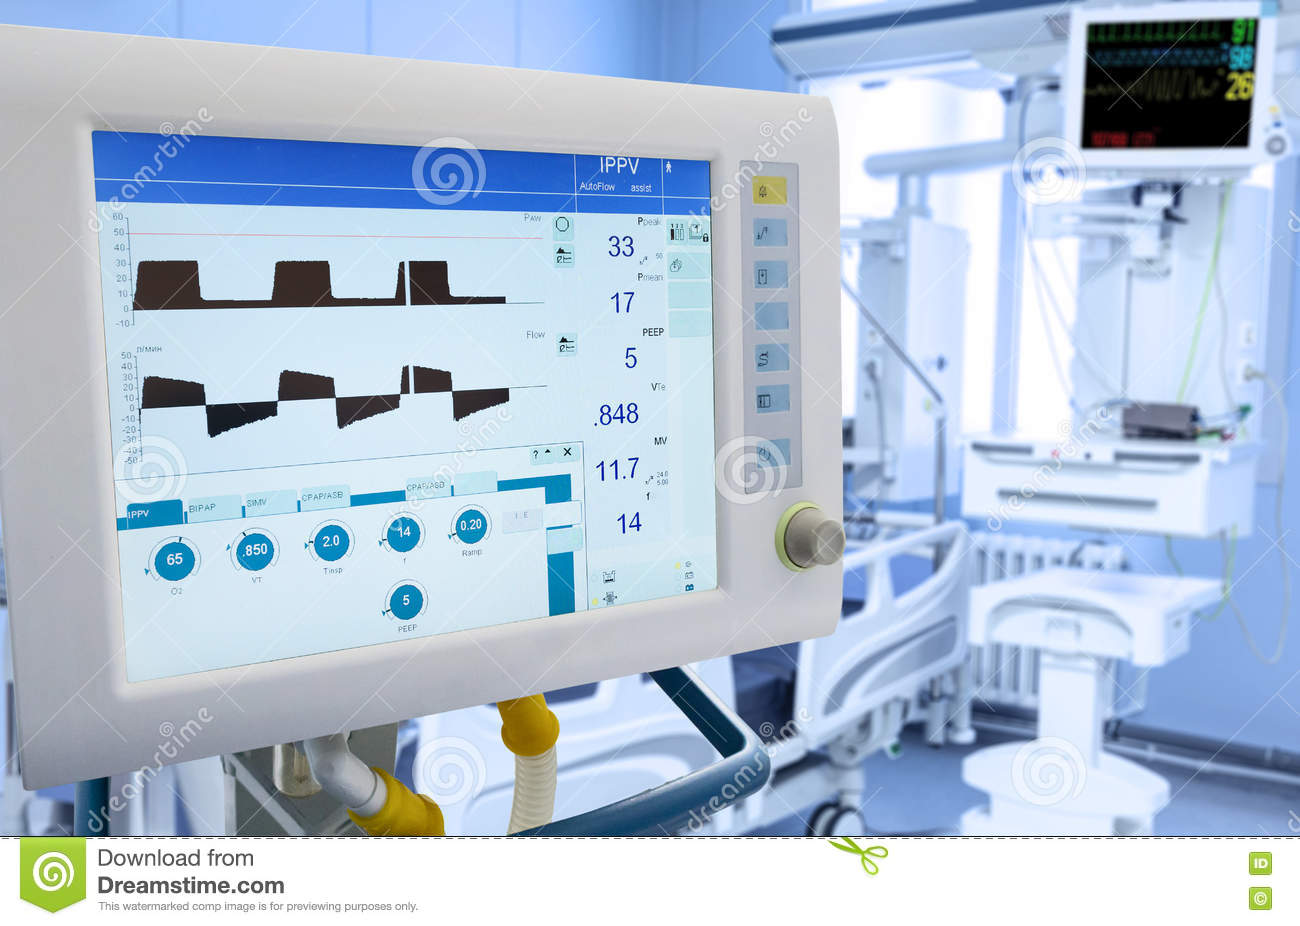 mechanical lung ventilation in icu stock photo - image of heartbeat